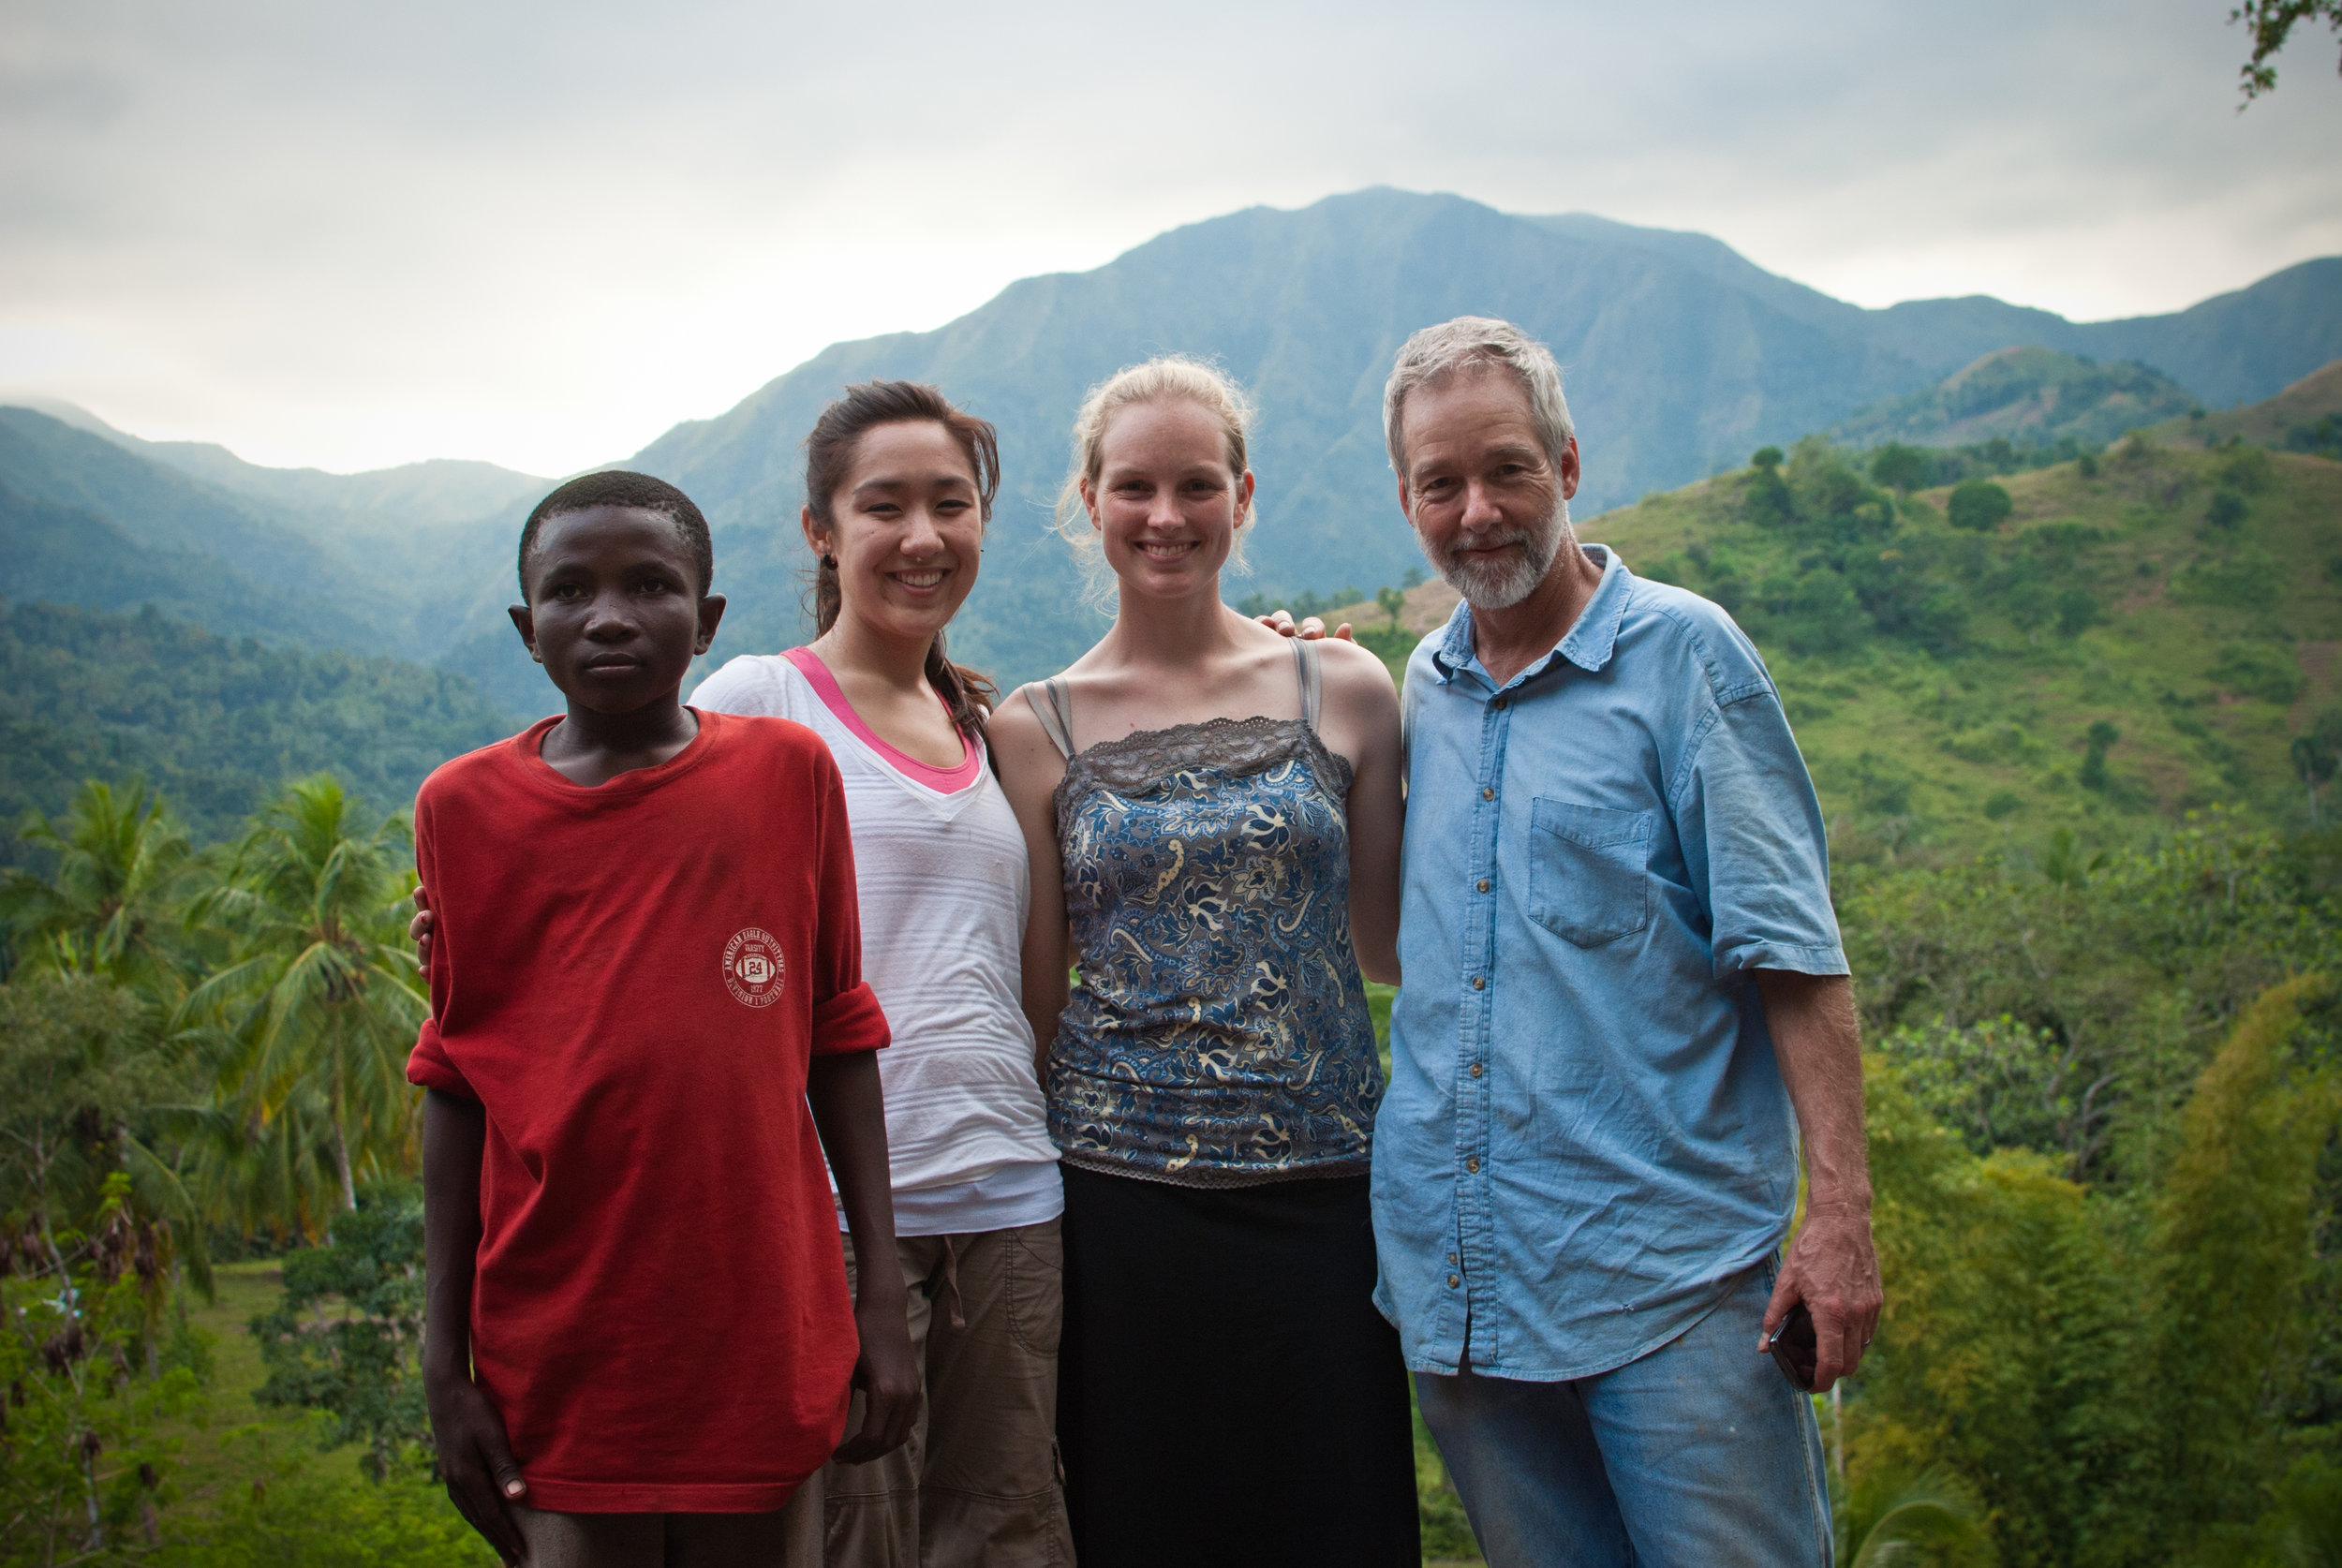 GROW volunteers and local youth pose in front of the stunning mountain backdrop near Soufriere.